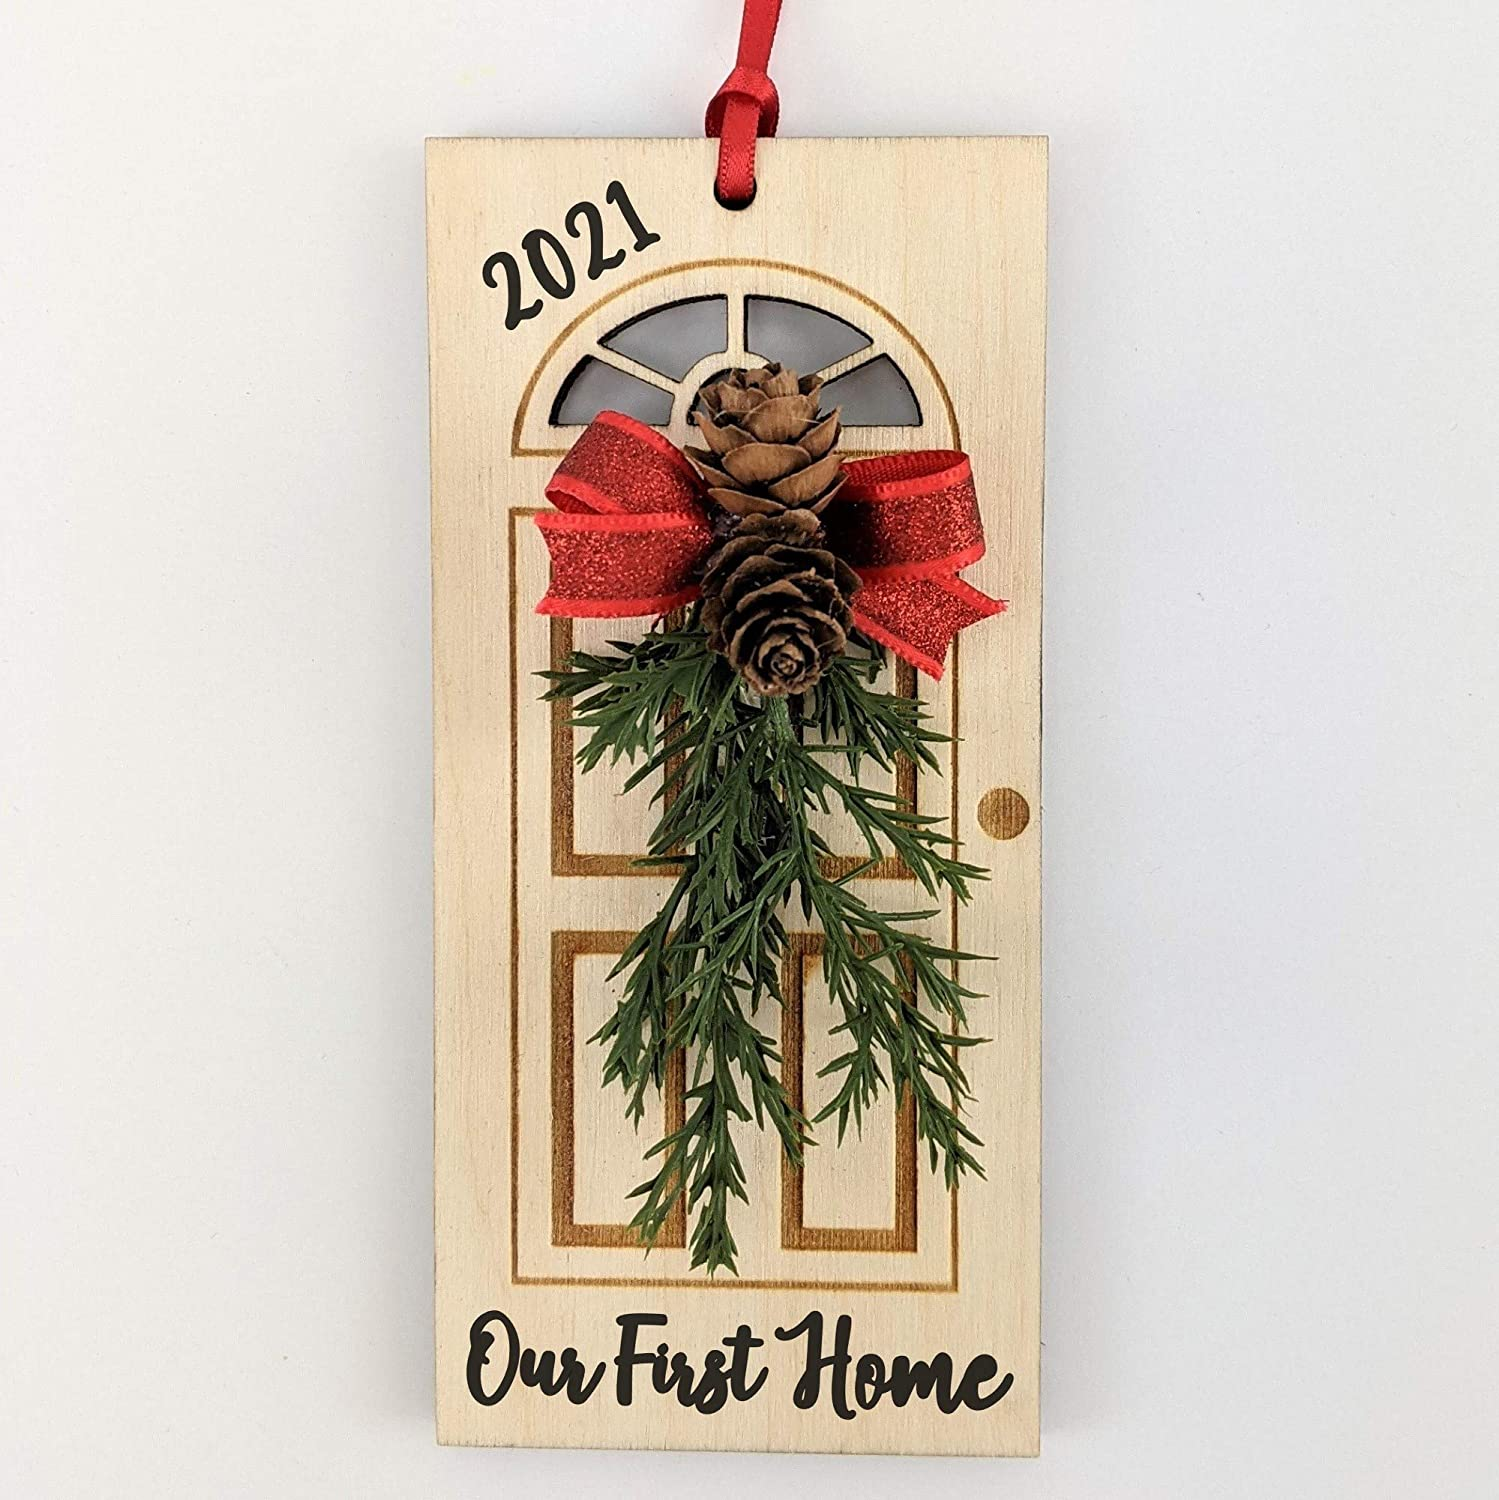 Our First Home Ornament Christmas 2021 - Newlywed Gift - Present for First Time Home Buyer - Engagement